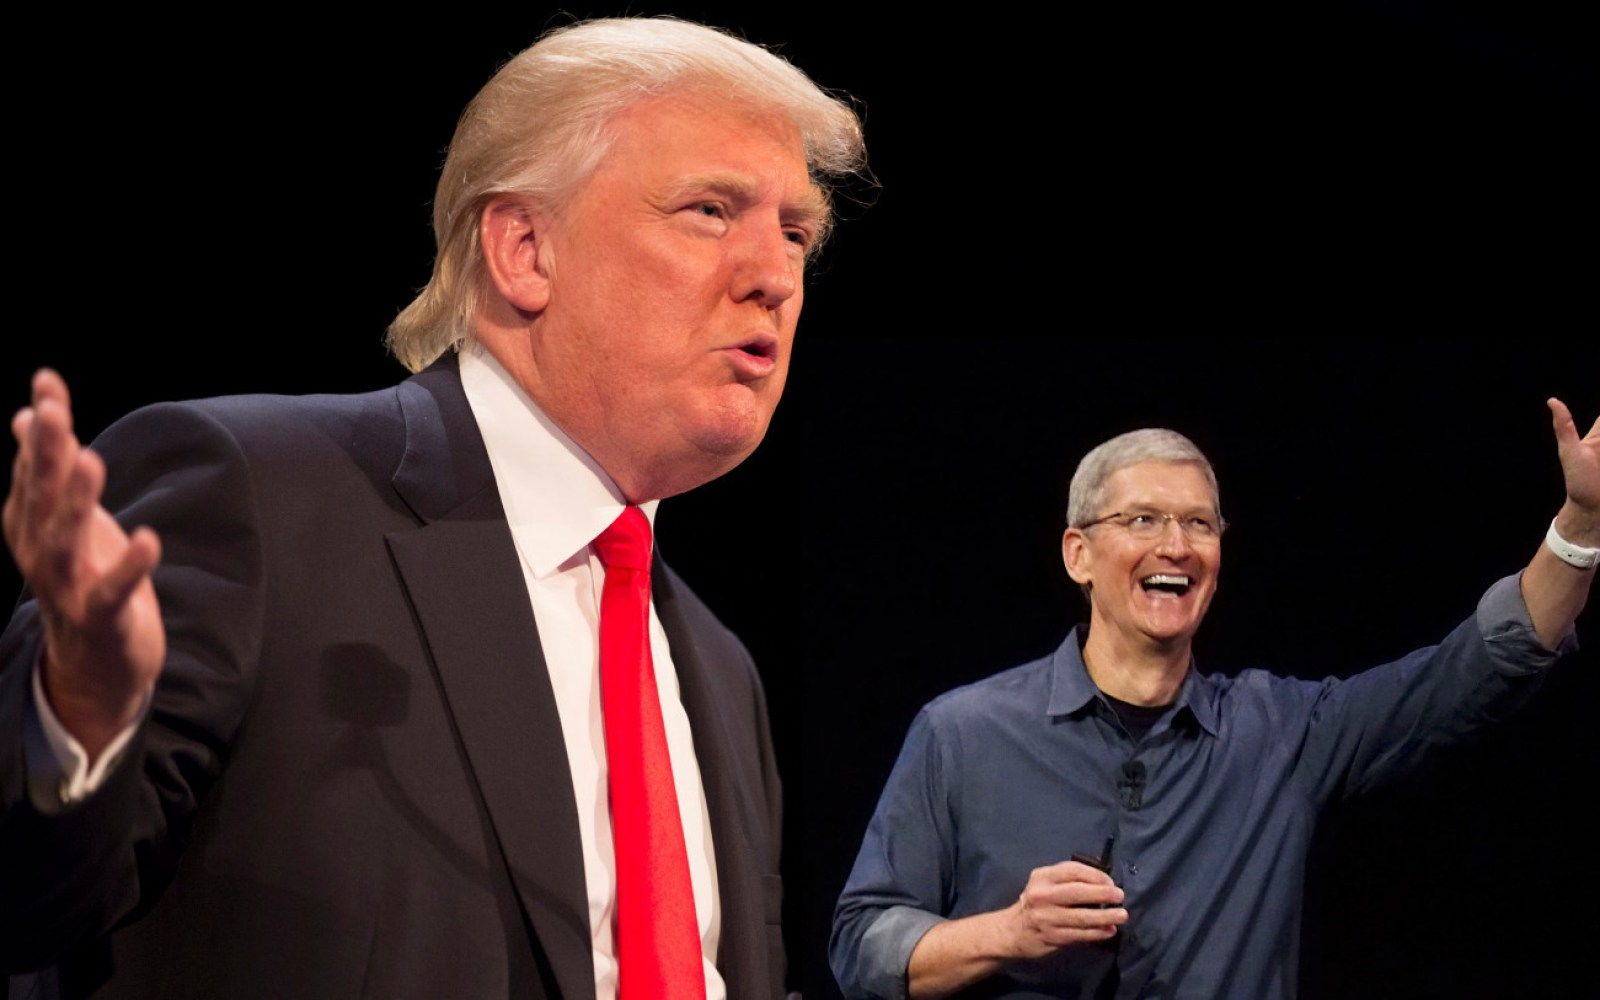 Tim Cook & other tech leaders meet Trump today, reports say 'no set agenda' but one topic [Update]